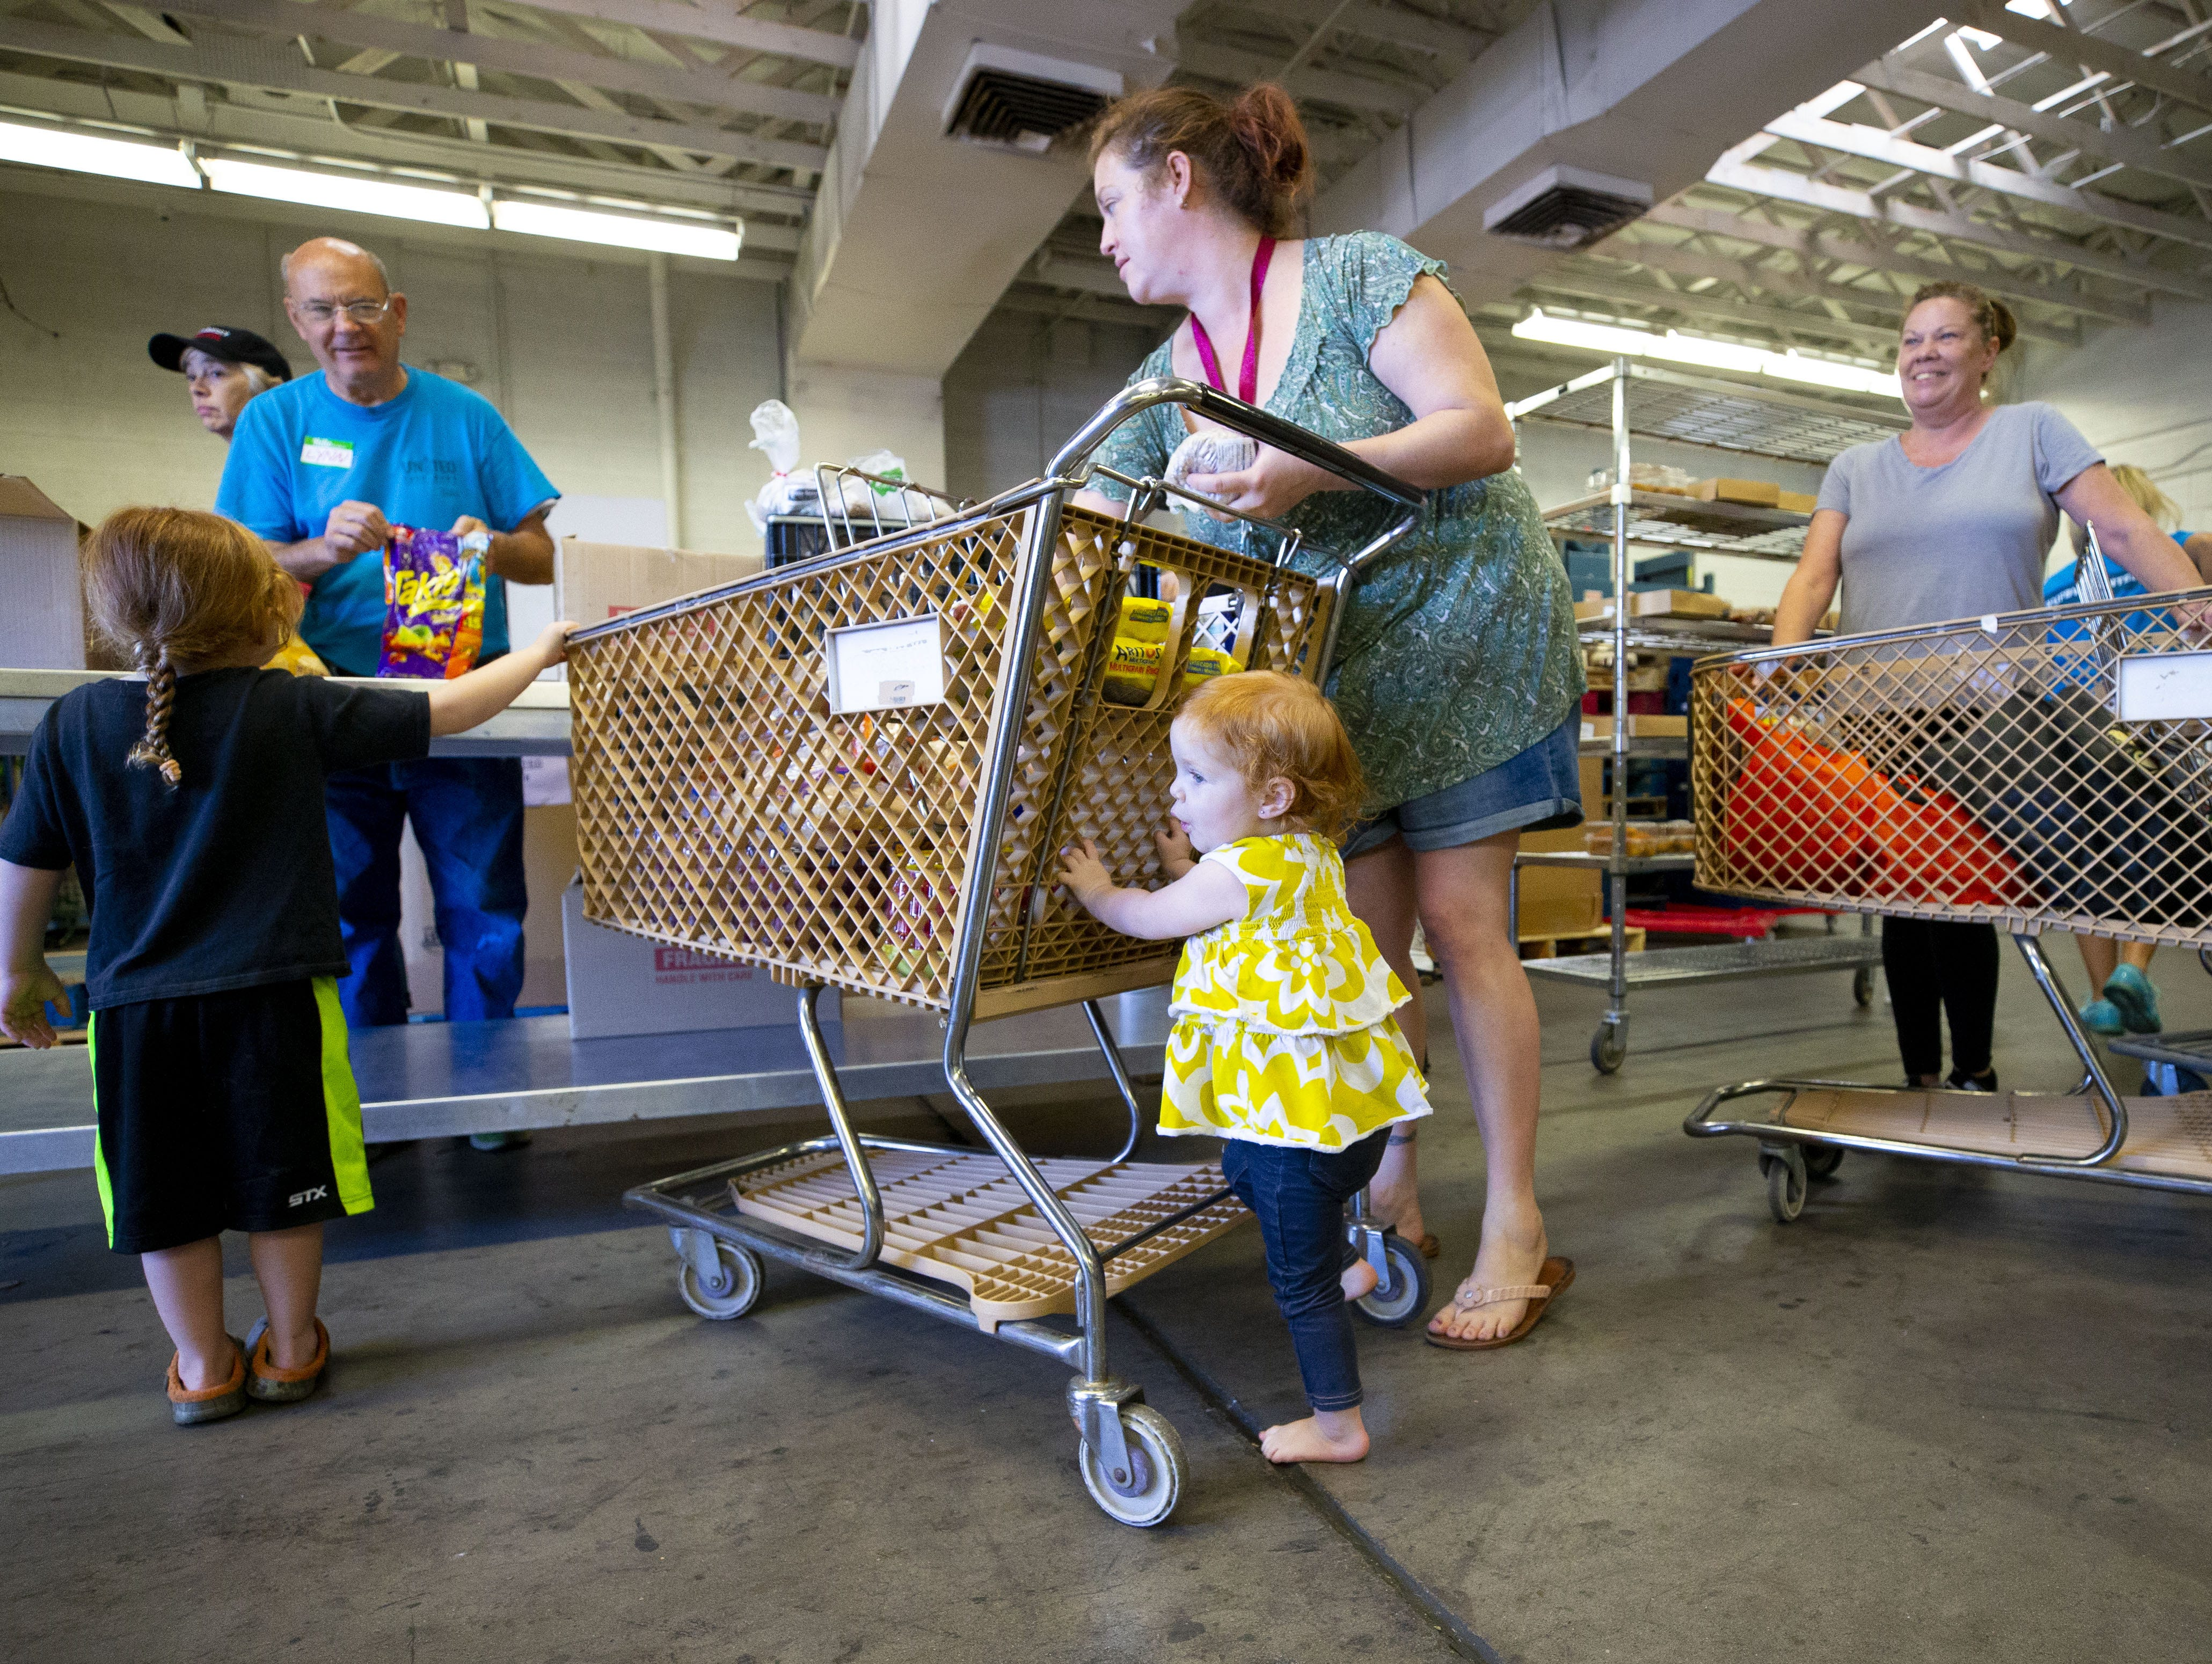 Shawna Dorner, and her children Theodore, 3, and Claire, 2, of Apache Junction, receive food from United Food Bank in Mesa on September 28, 2018.